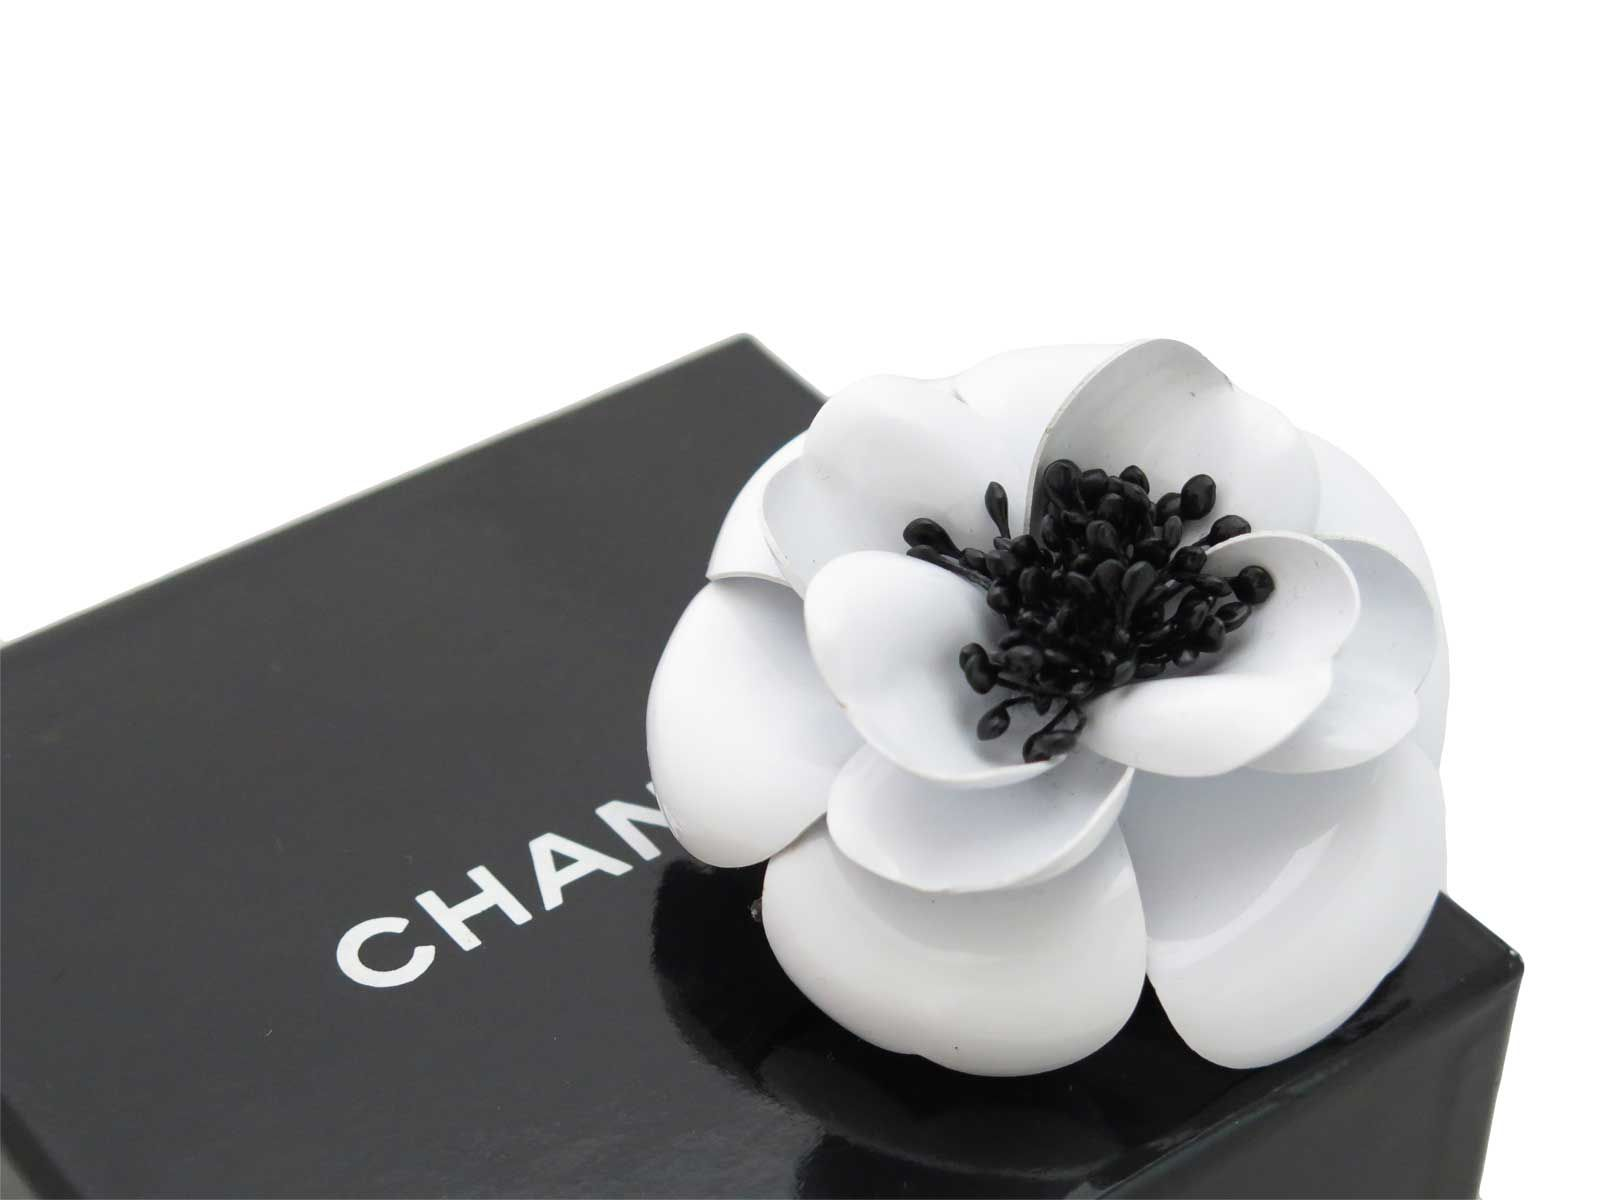 ea7c13c79122 Auth CHANEL Camellia Flower Pin Brooch White Black Plastic - e10376 in  Jewelry   Watches, Fashion Jewelry, Pins   Brooches   eBay